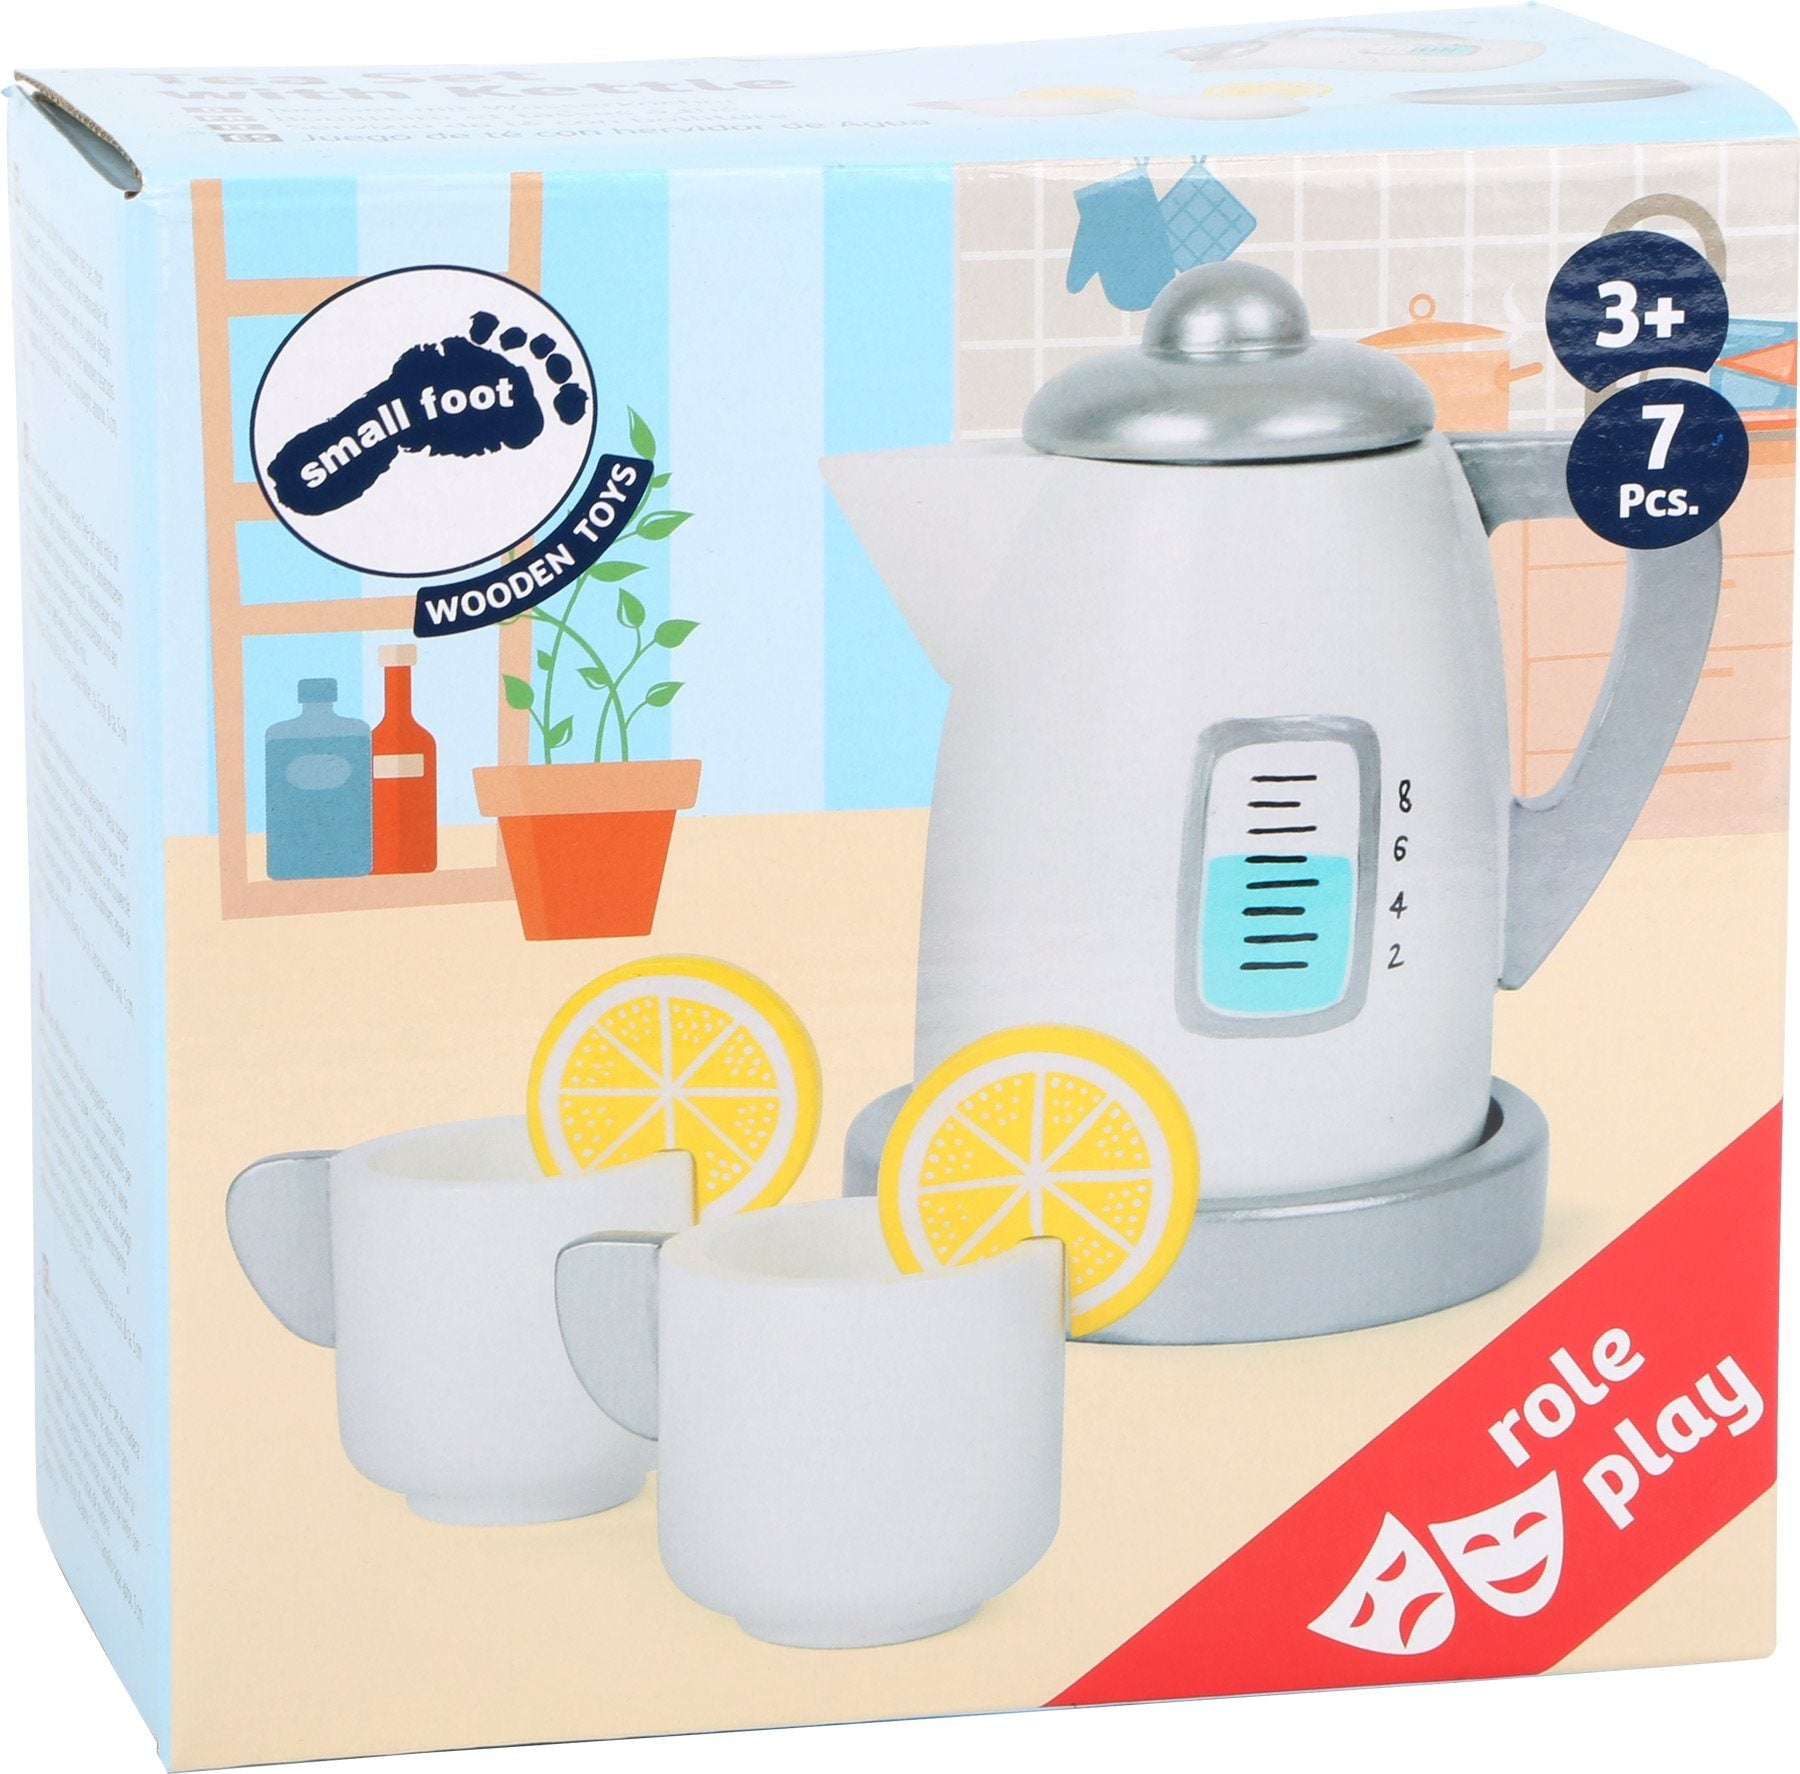 Tea Set with Kettle for Play Kitchens by Small Foot